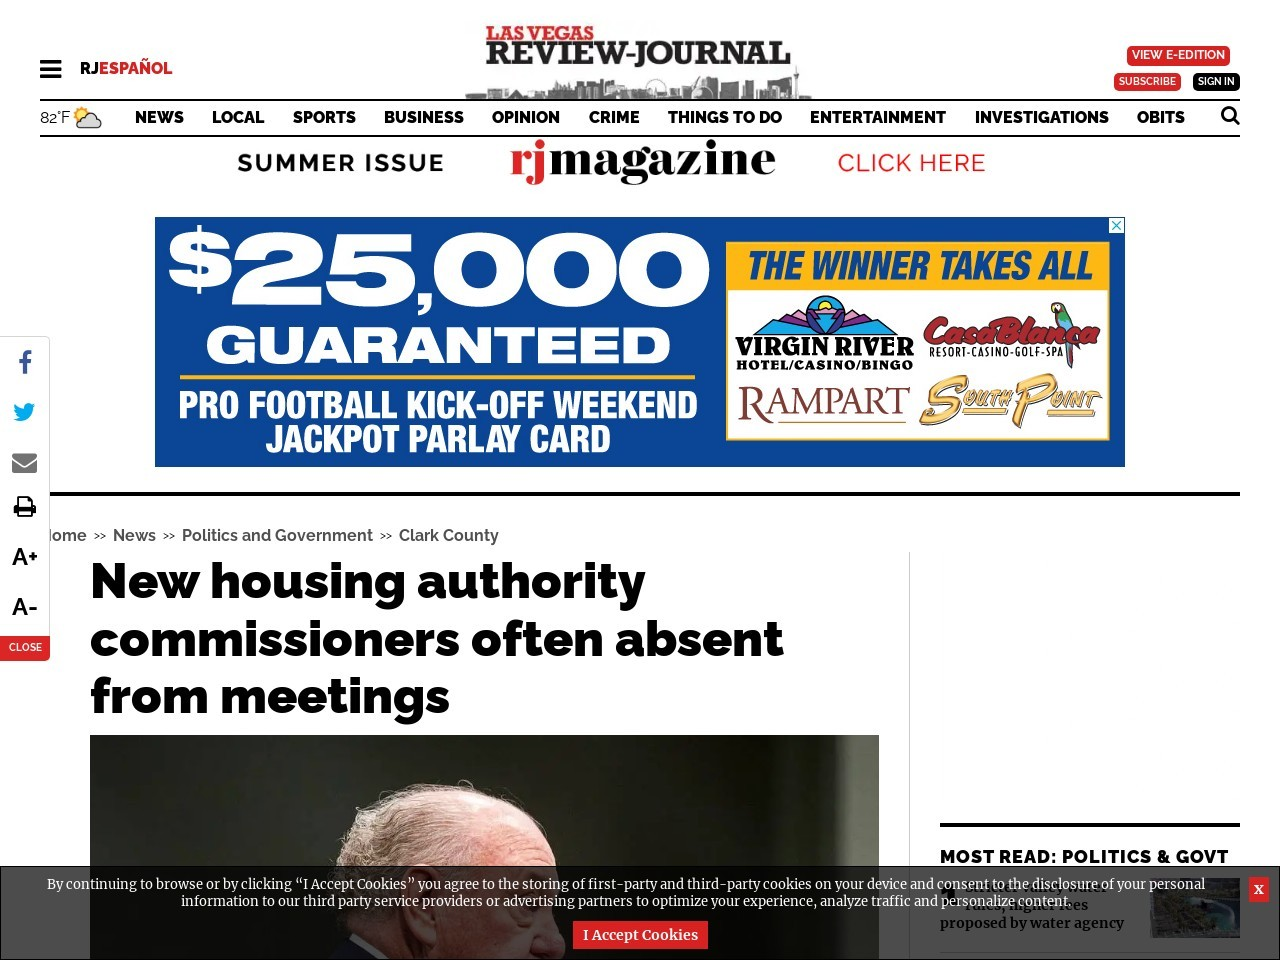 New housing authority commissioners often absent from meetings